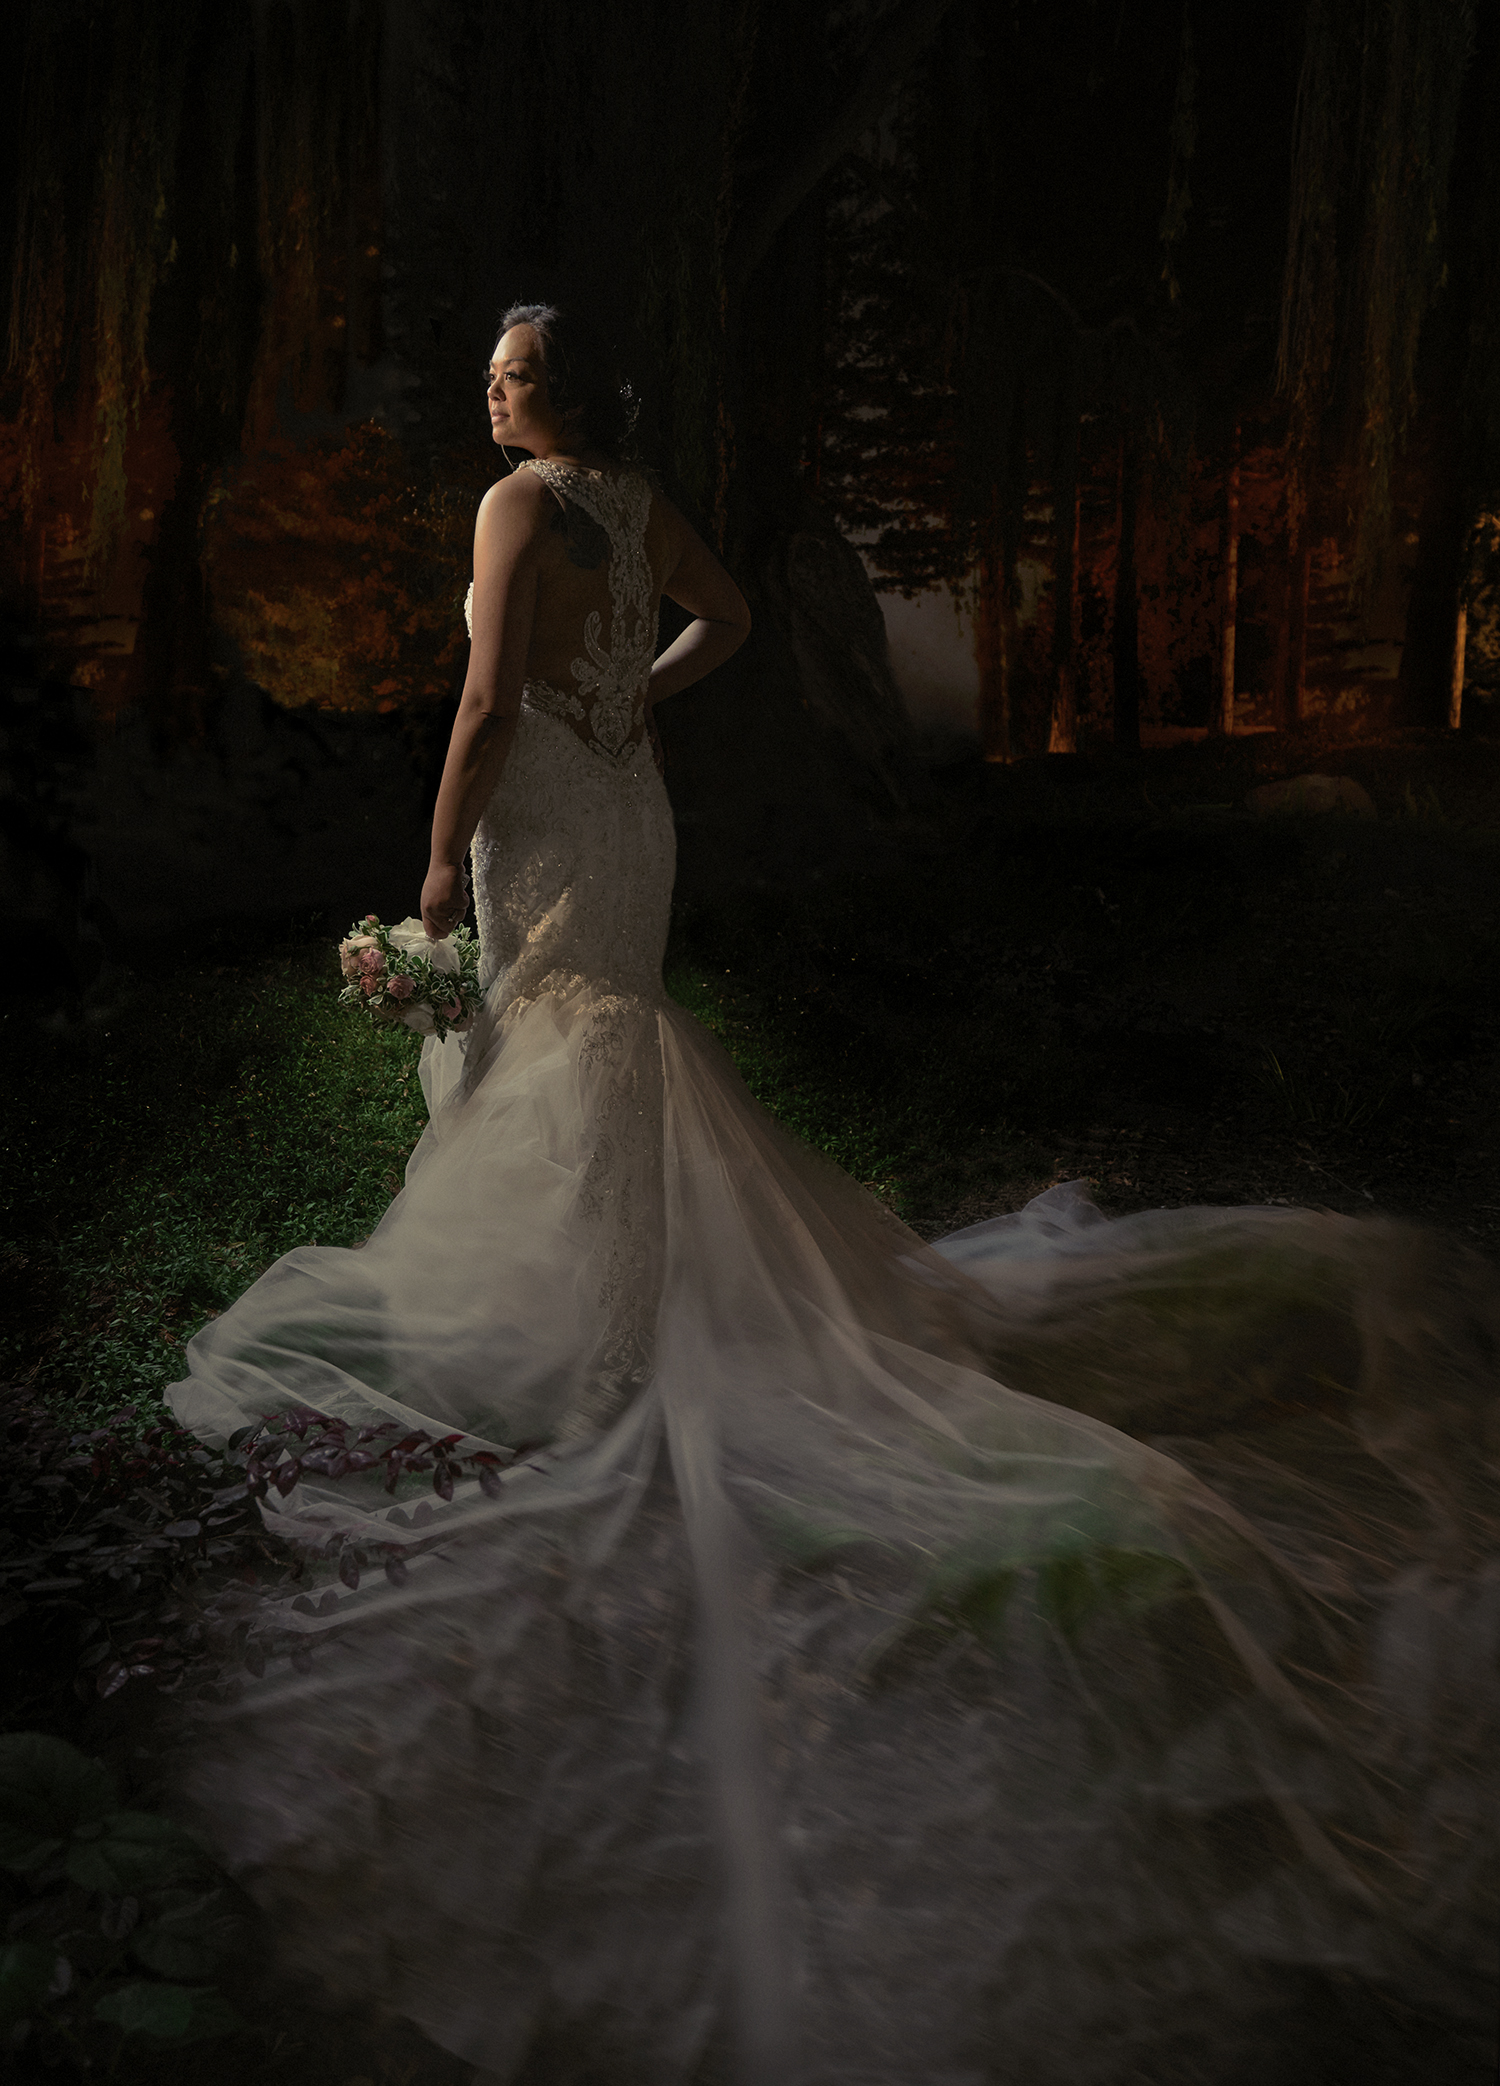 Luxchromatic_Wedding_Photographer__Bride_Best_Bay_Area_San_Francisco_San_Jose_Sony_Alpha_Profoto.png